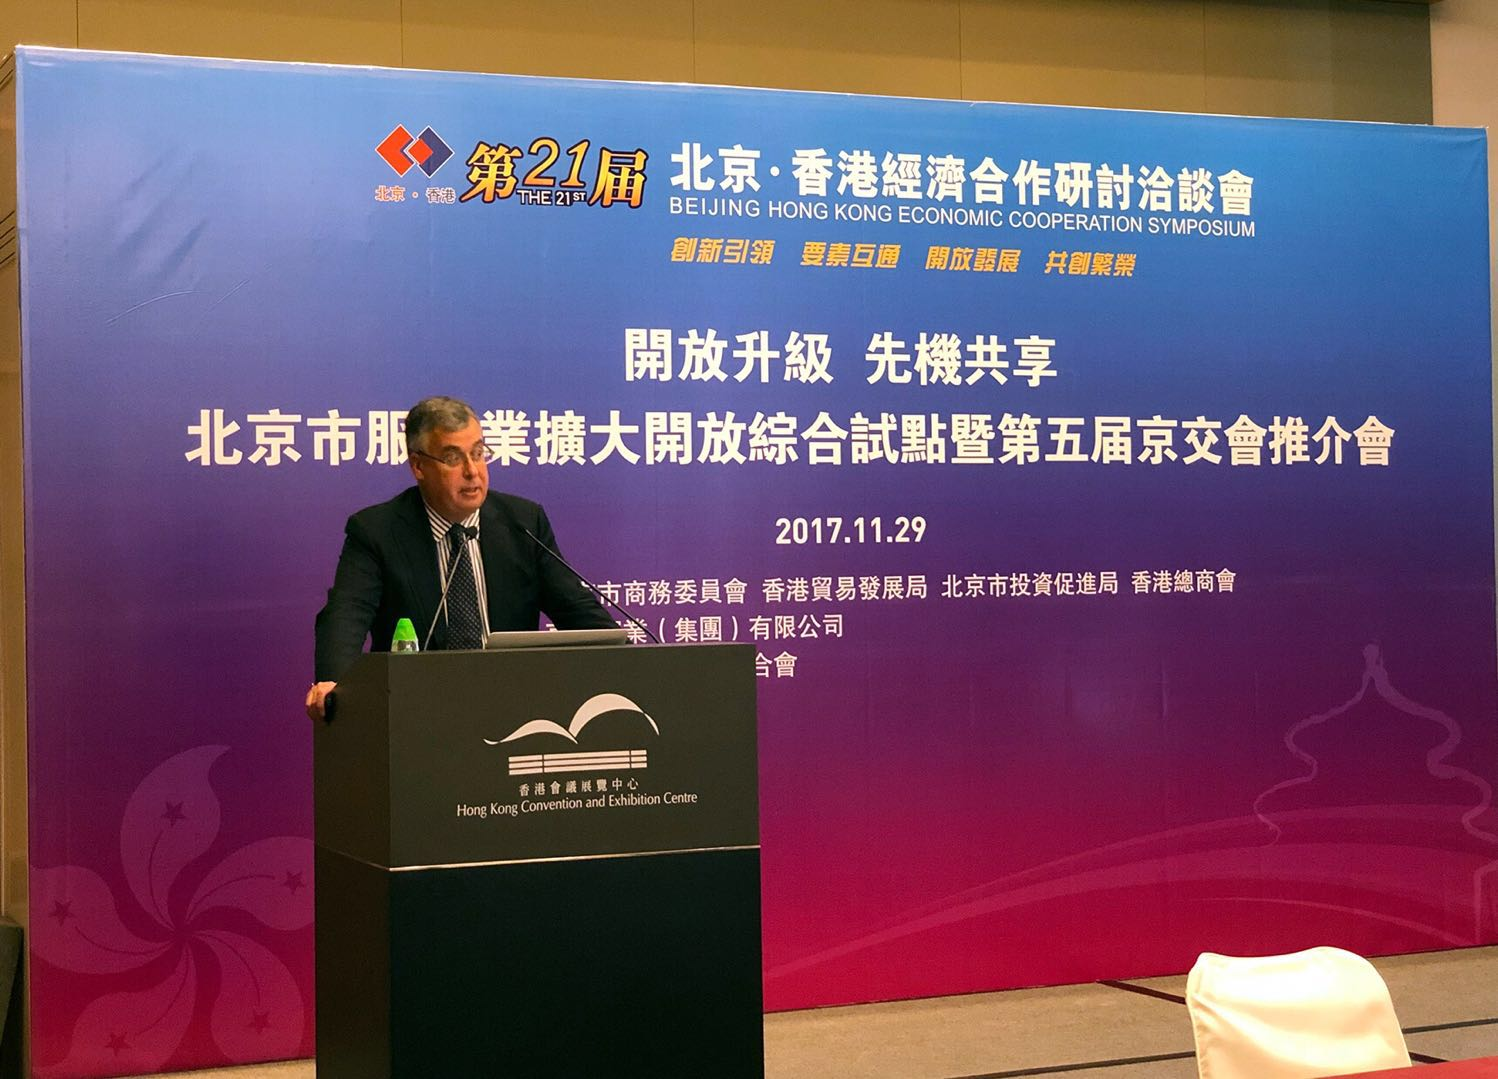 Beijing-Hong Kong Economic Cooperation Symposium